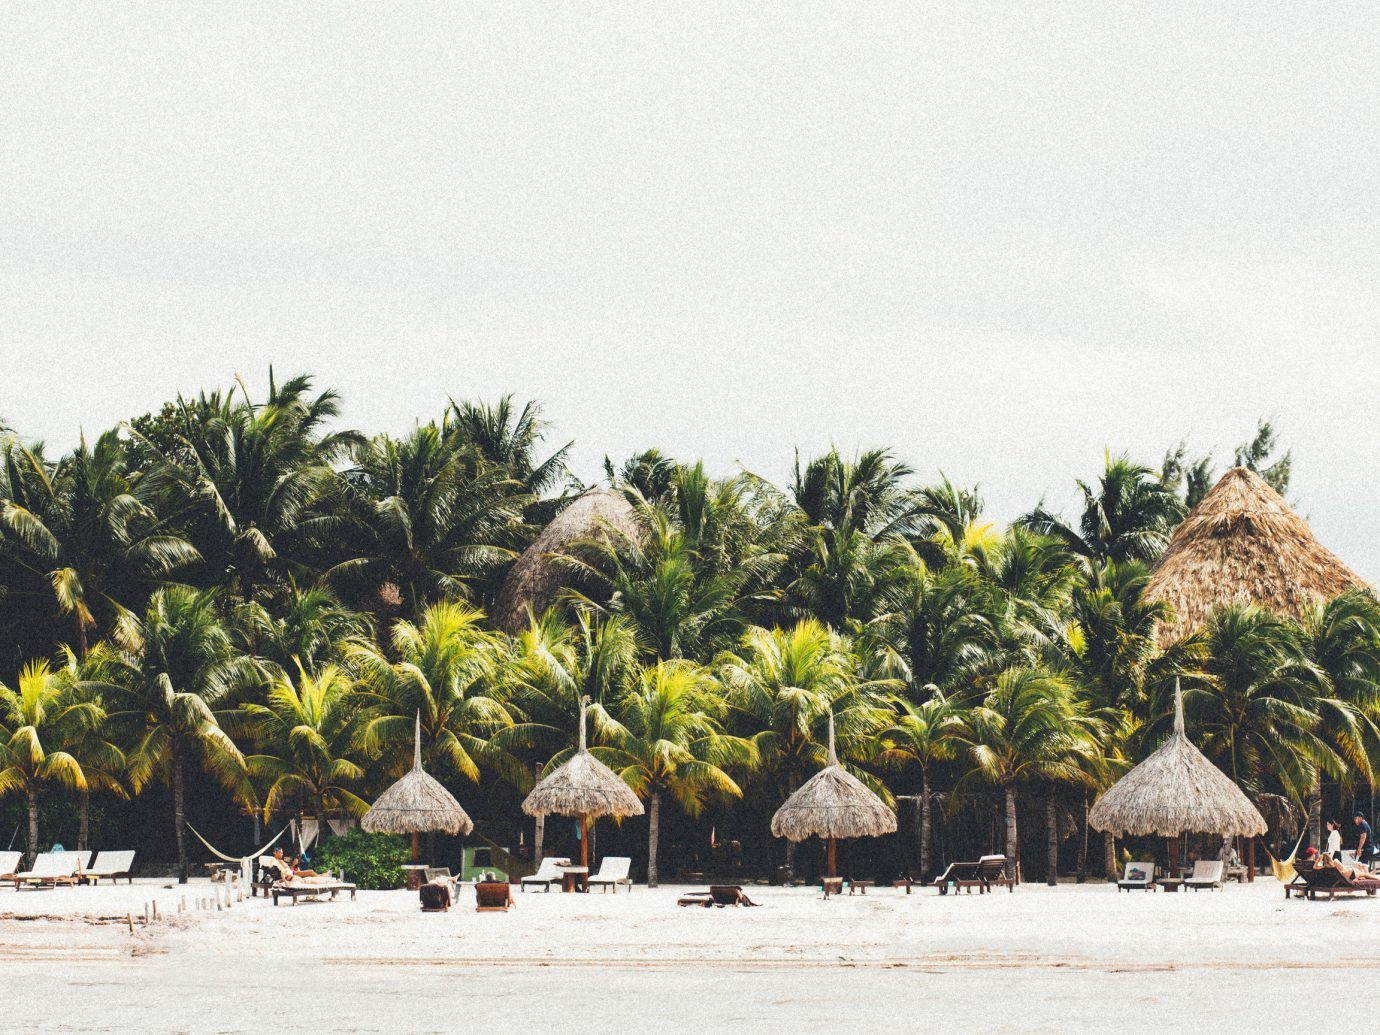 Honeymoon Hotels Mexico Romance Tulum tree outdoor arecales palm tree Beach plant vacation tourism sky date palm water tropics day